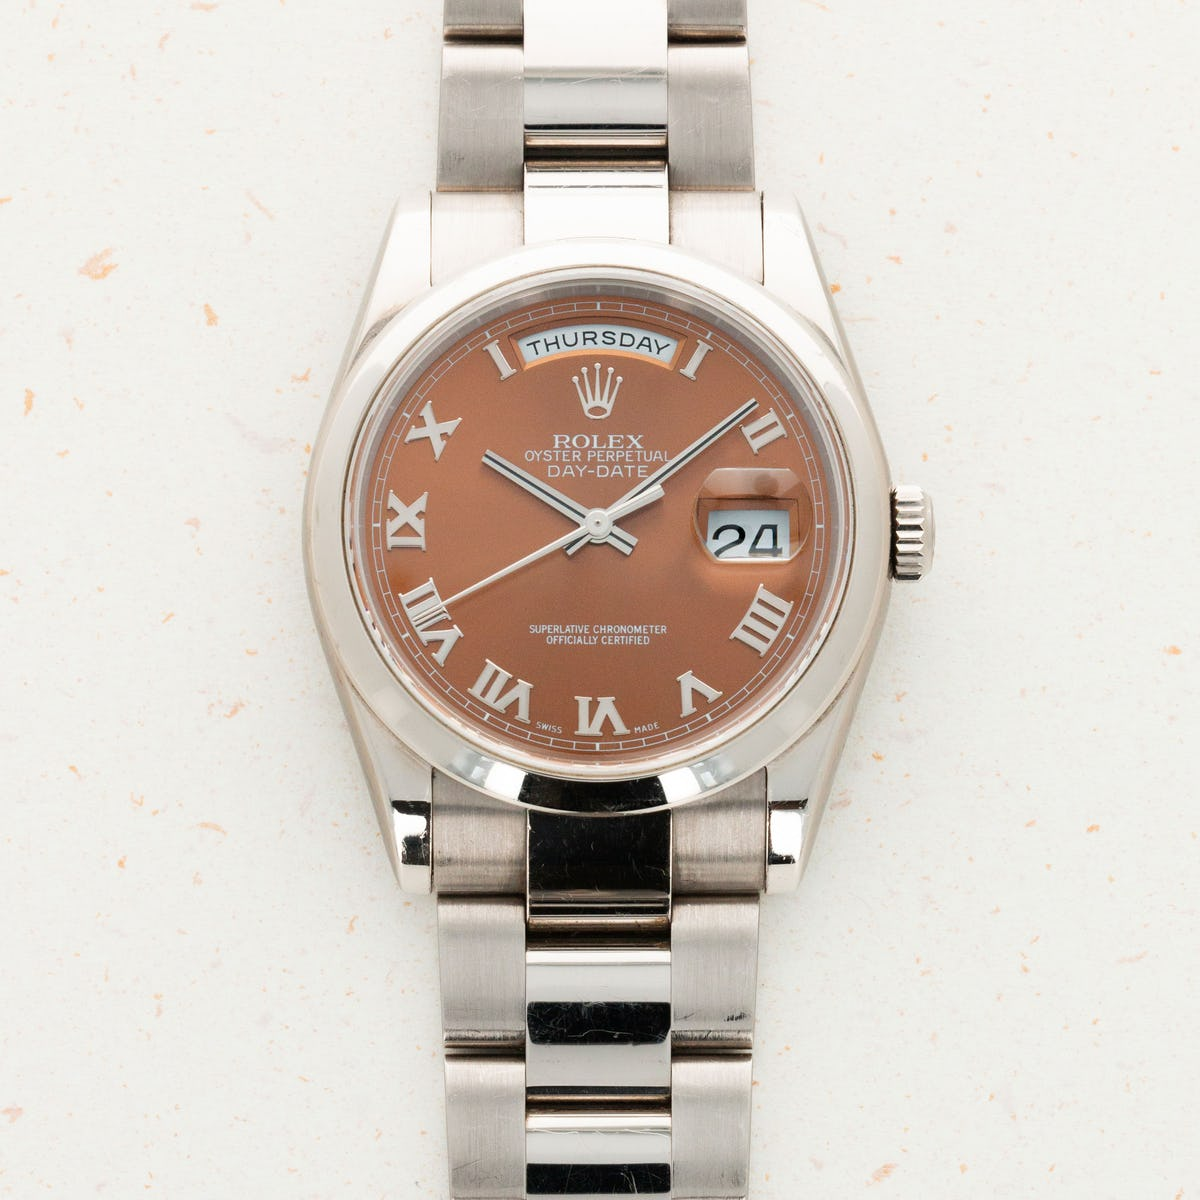 Thumbnail for Rolex White Gold Day-Date Havana Brown Dial 118209